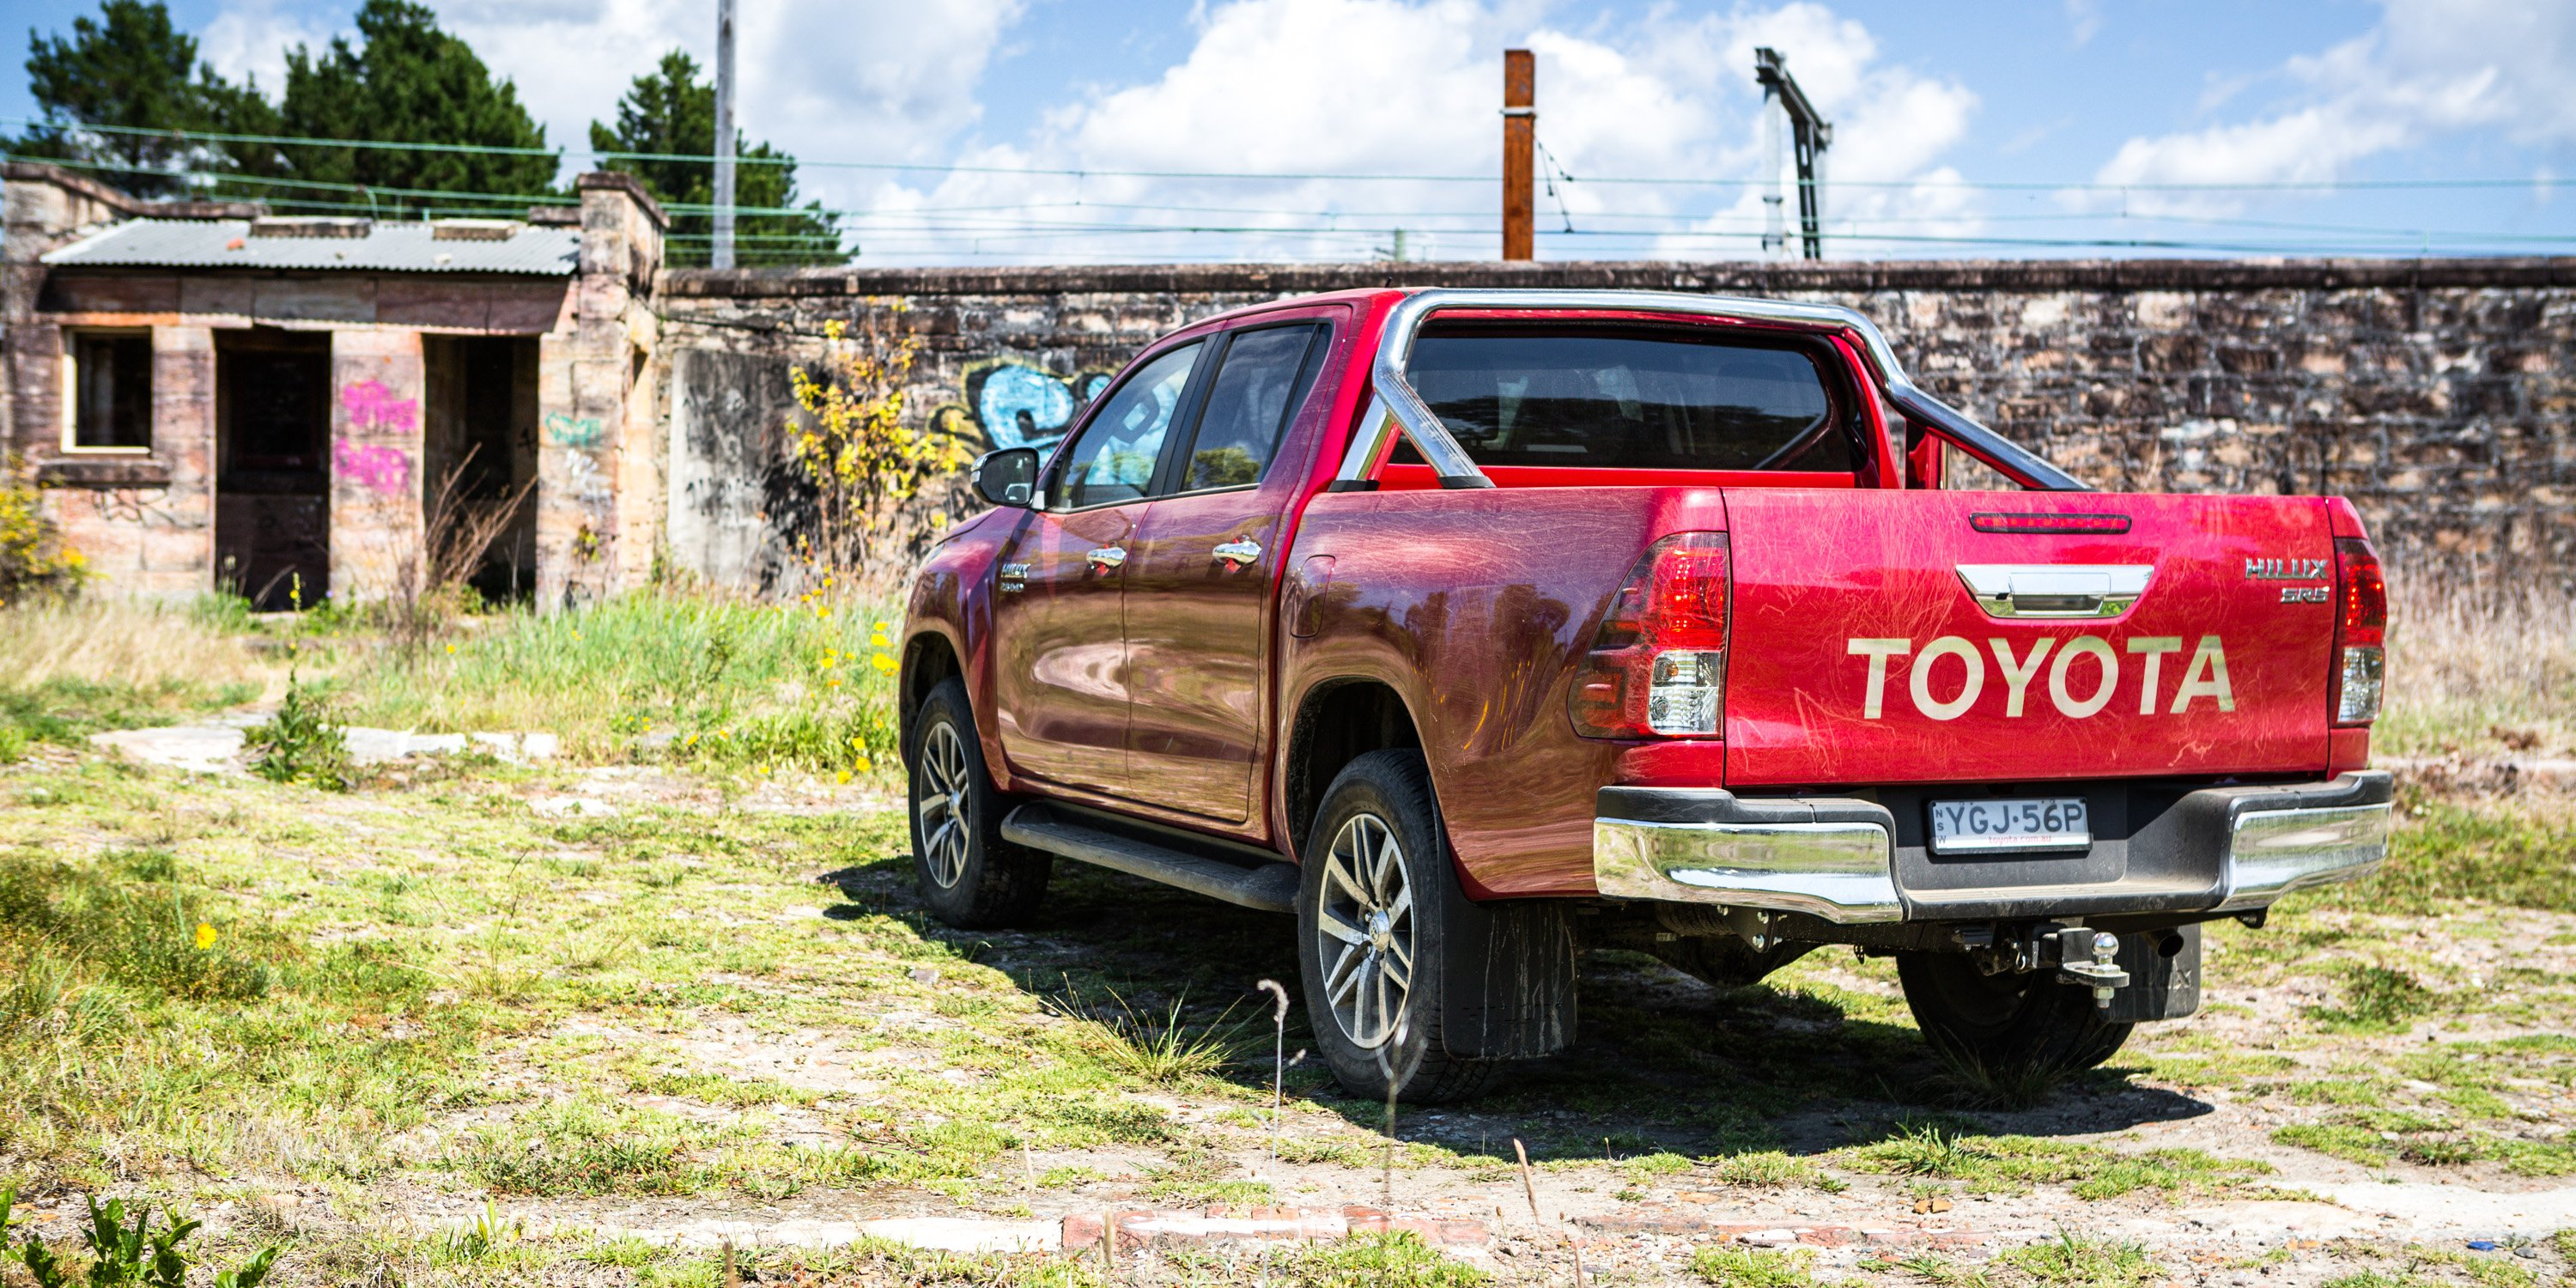 2016 Toyota HiLux SR5 Double Cab review - photos | CarAdvice